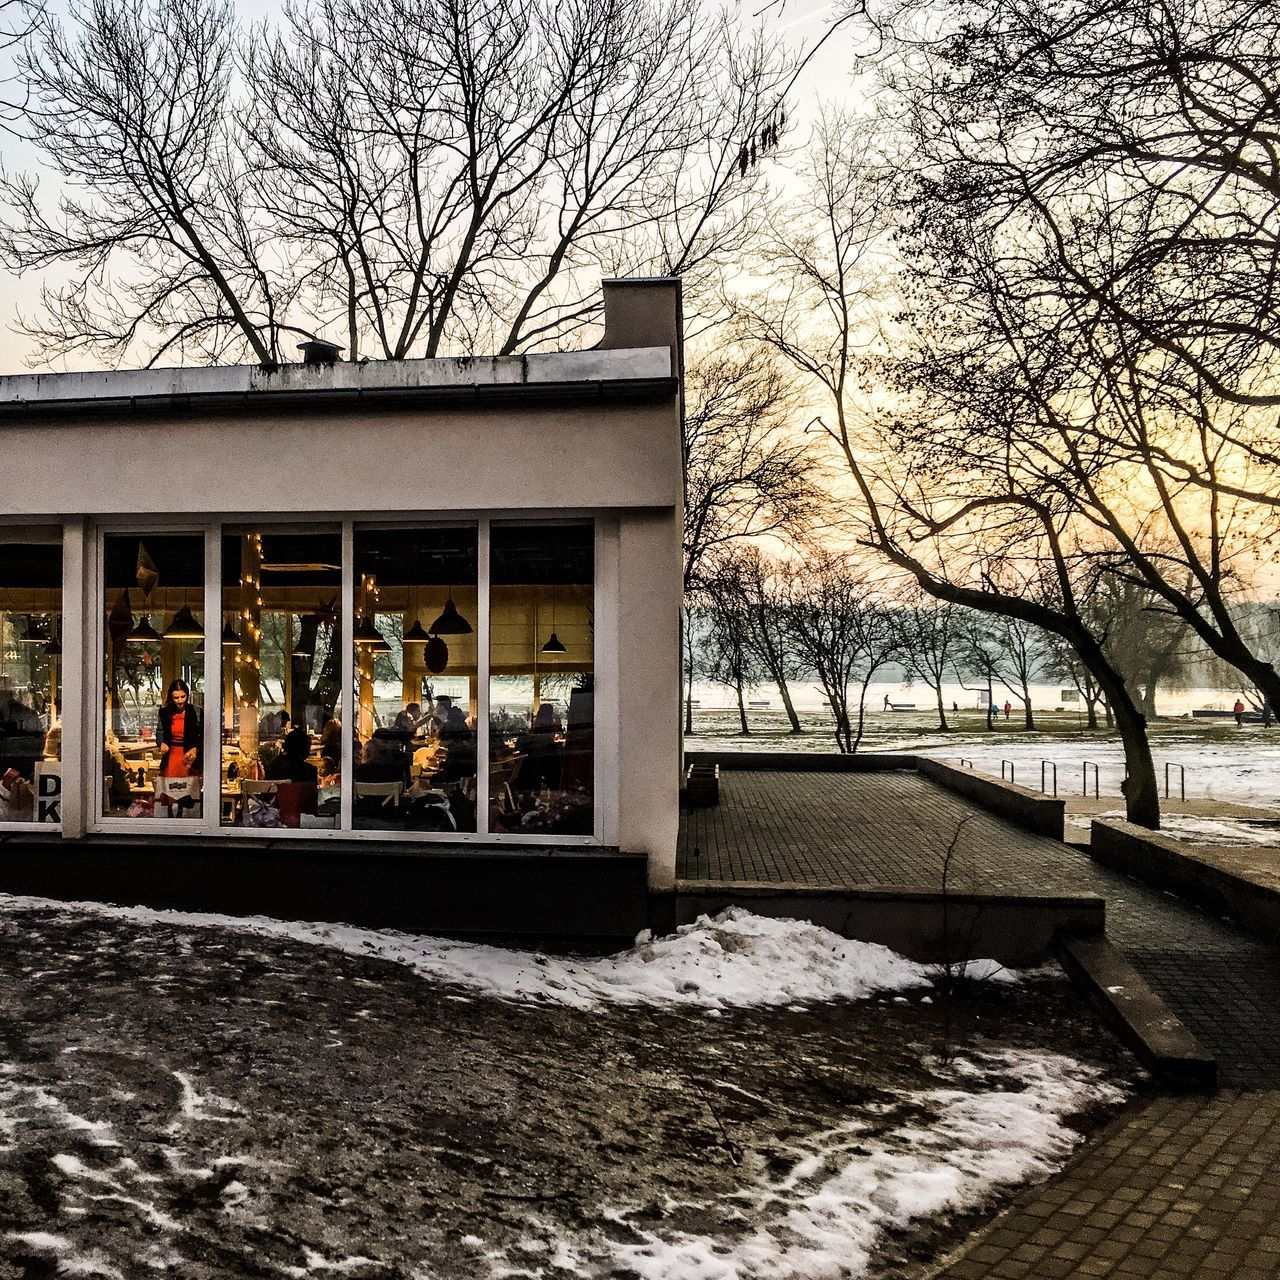 Tree Bare Tree Outdoors Architecture Building Exterior Built Structure Day Winter Cold Temperature Nature Snow Restaurant Sunset People Red Dress Dinner